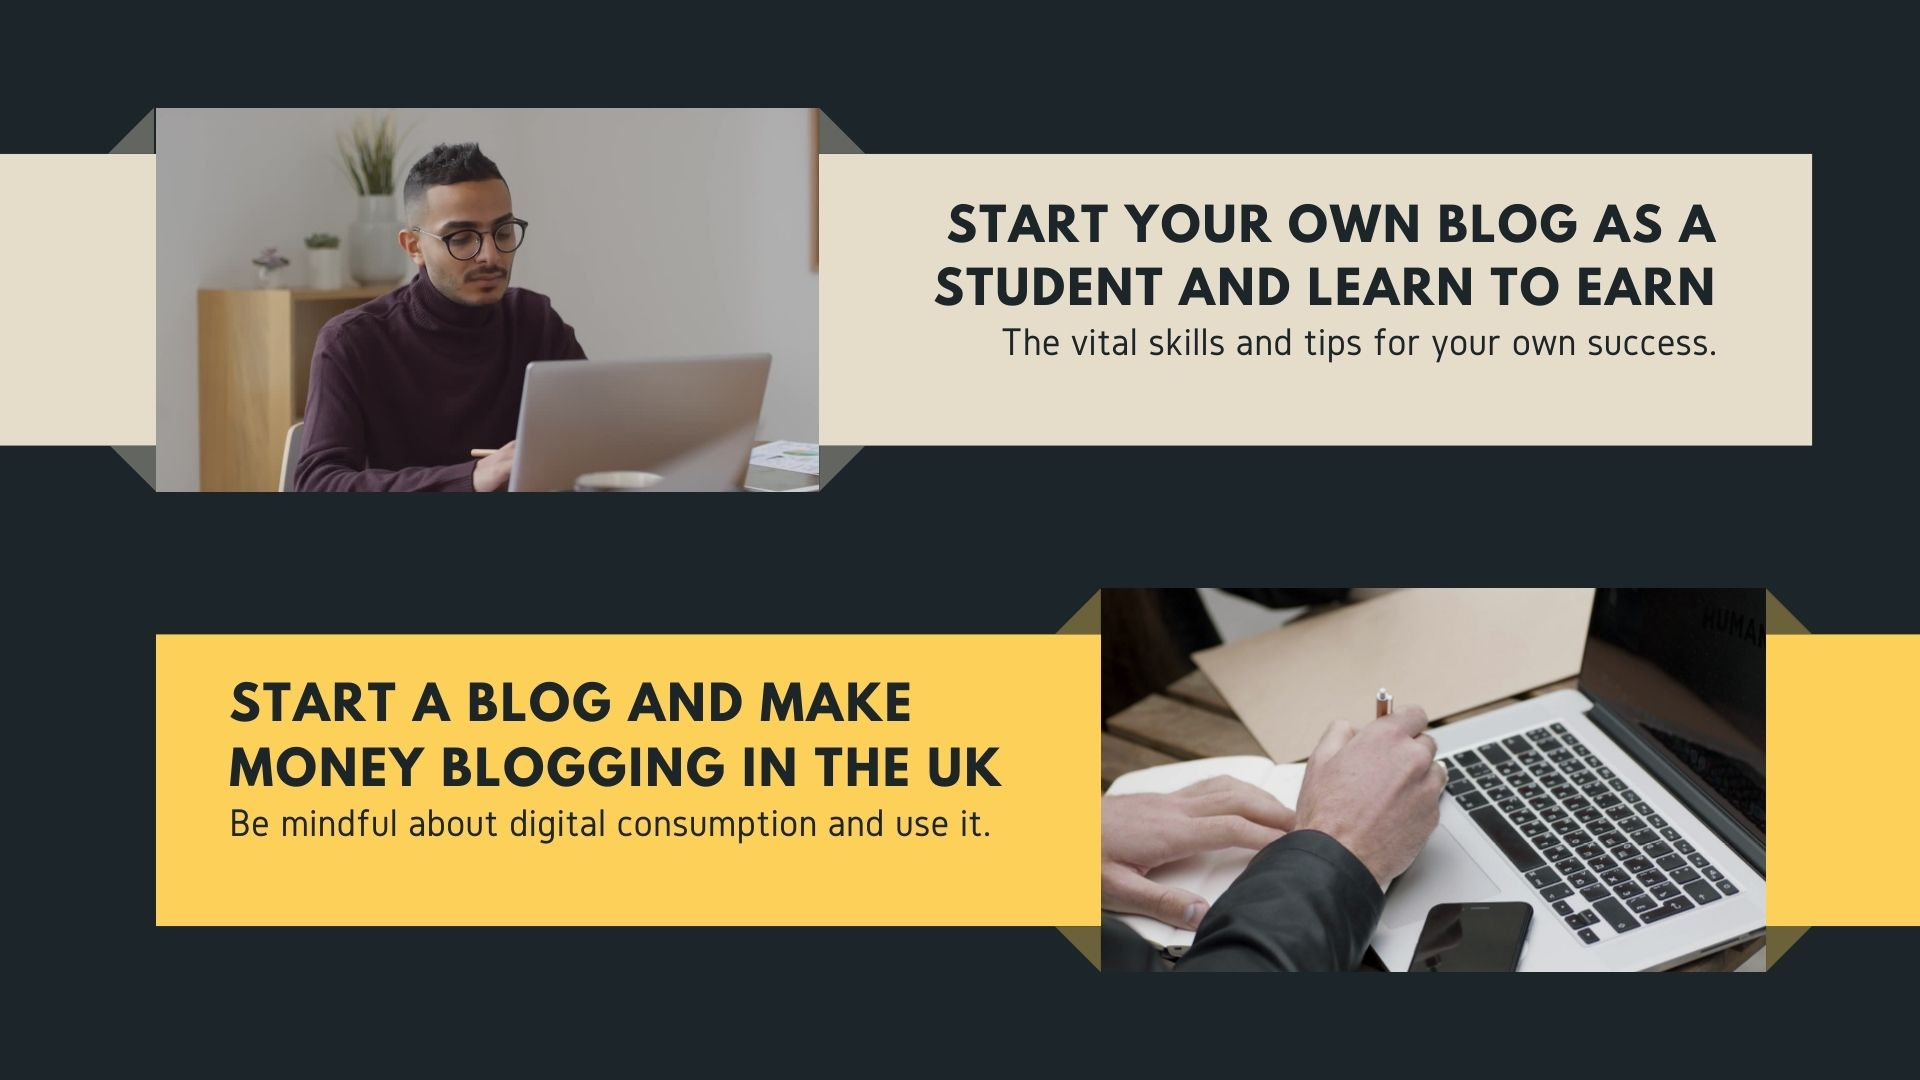 starting-a-blog-as-a-student